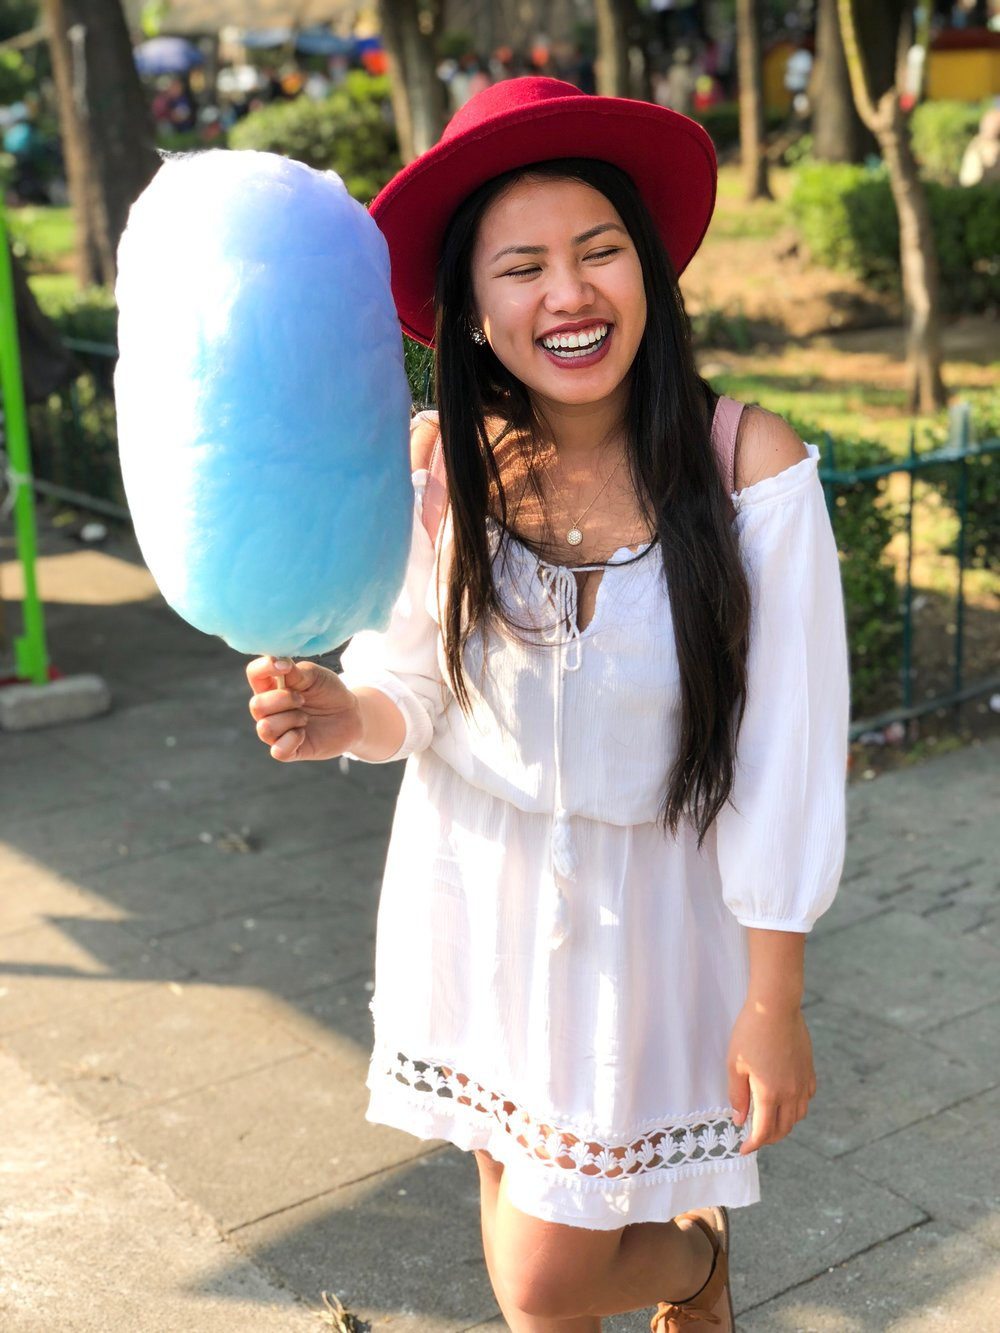 11 peso ($0.60 USD) cotton candy?  Who wouldn't be all smiles!